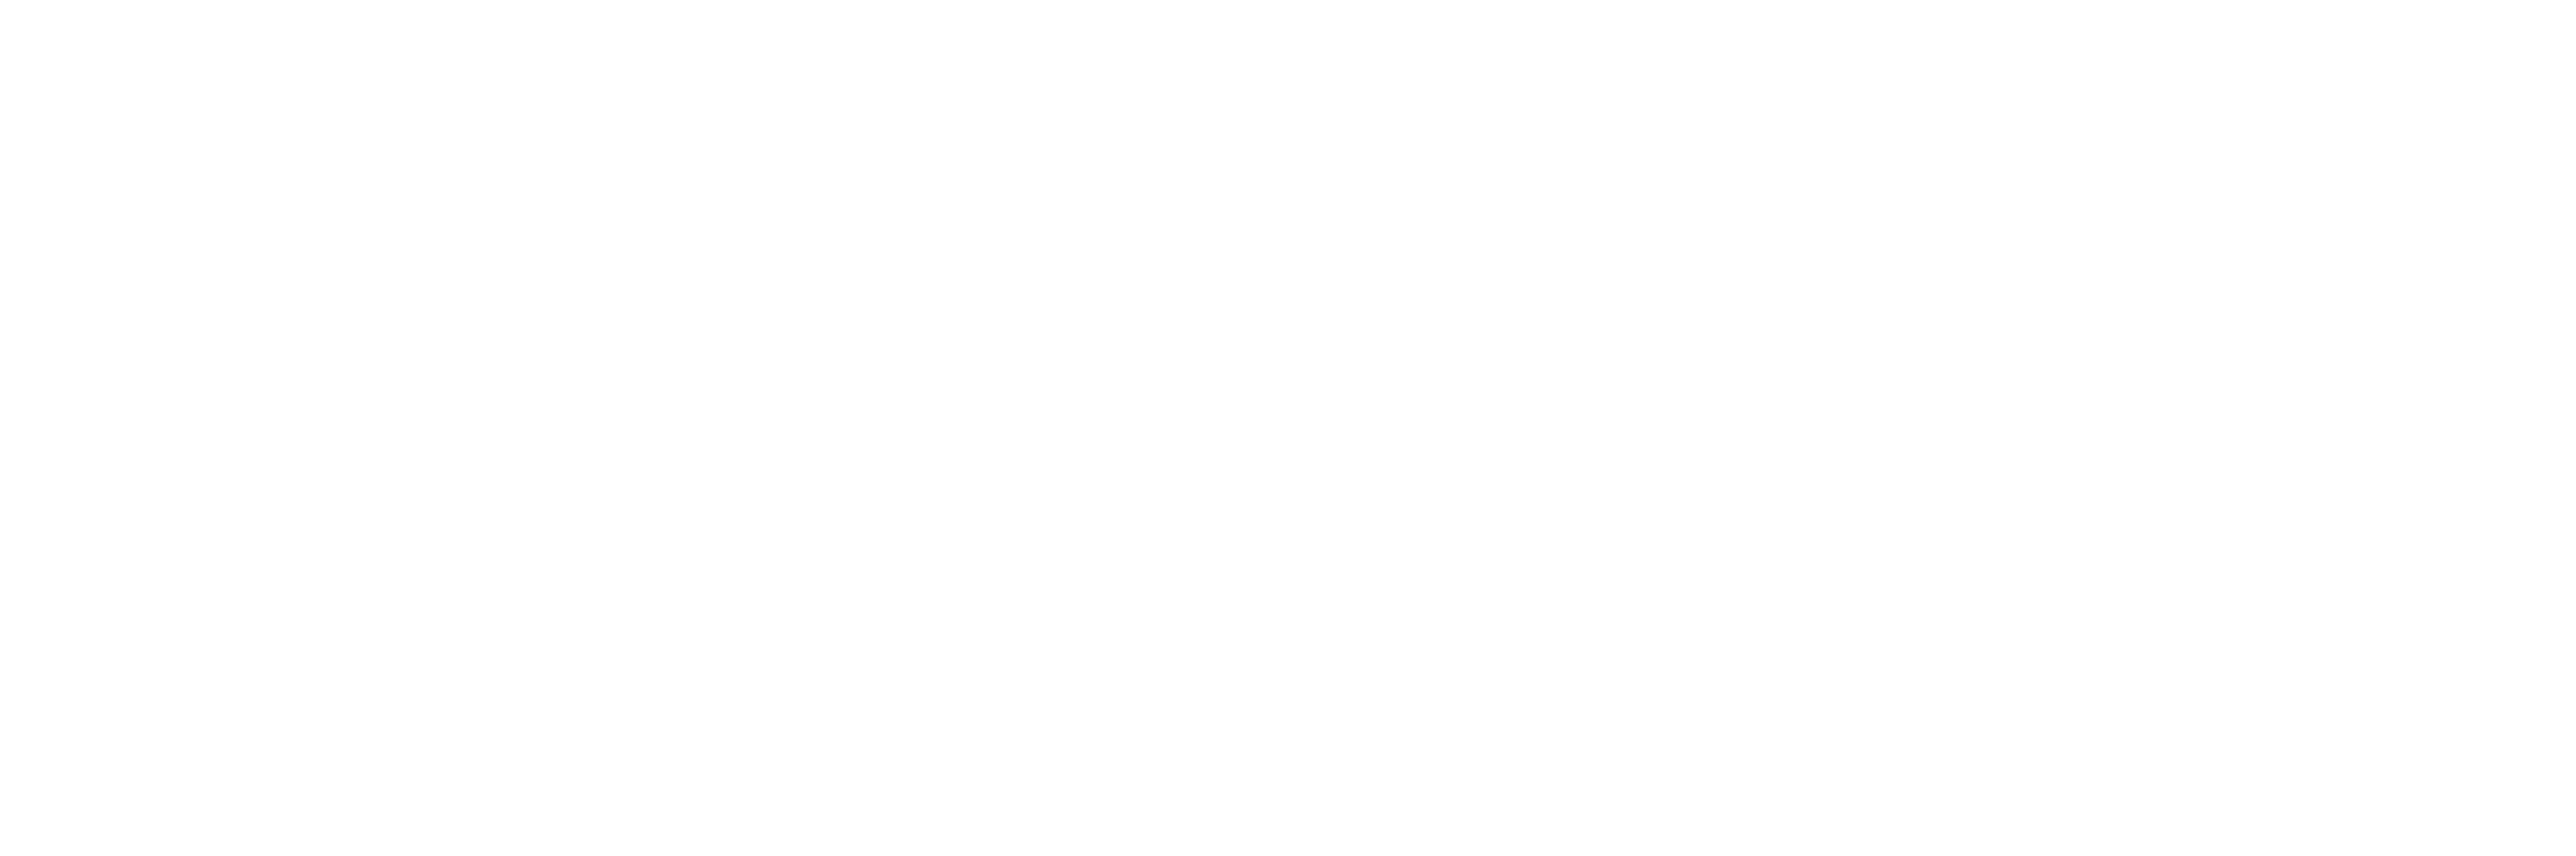 Welcome to PBS International Fze